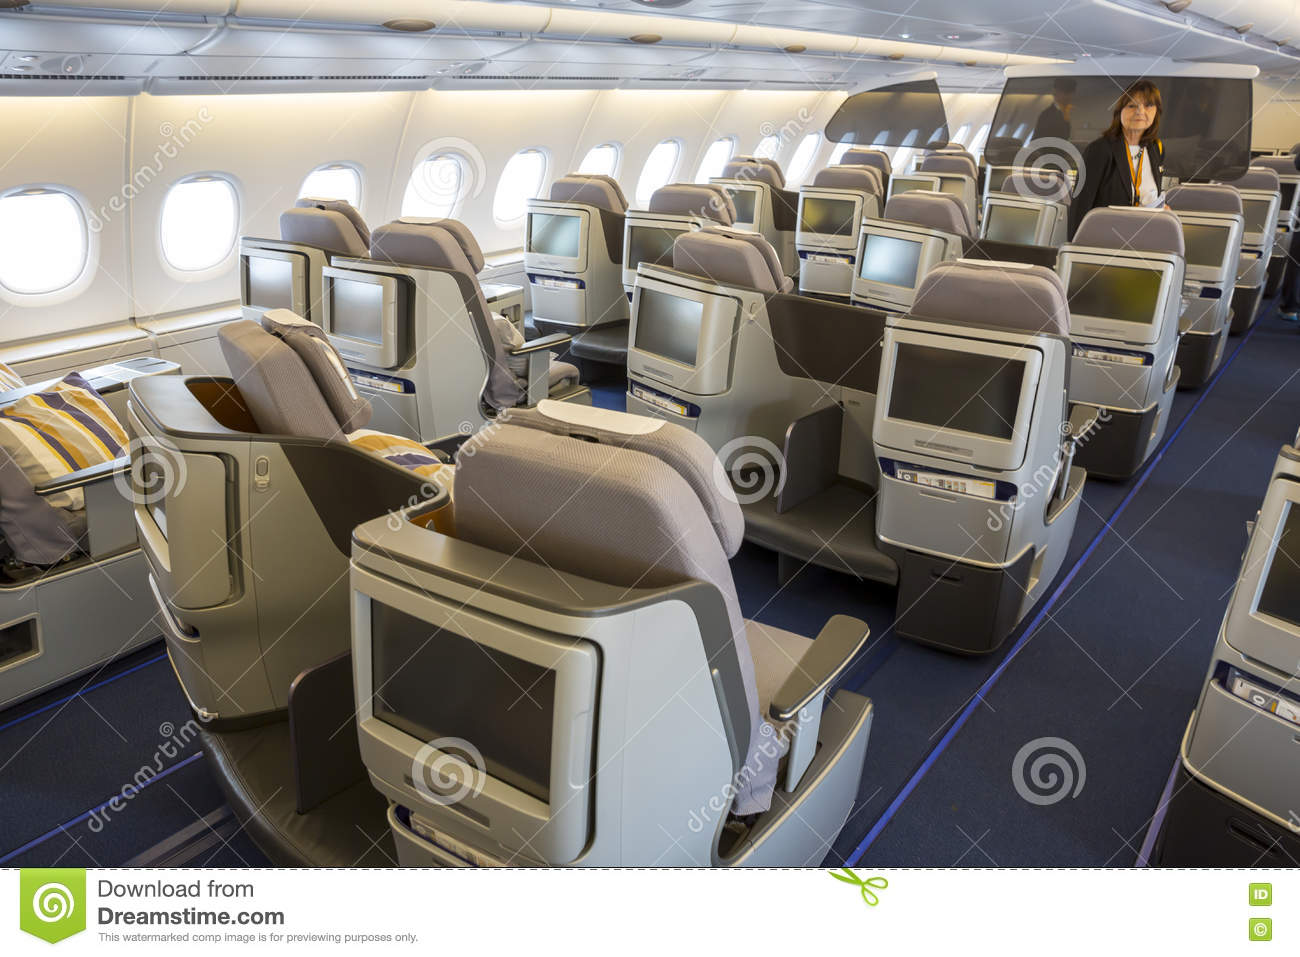 Avion d 39 airbus a380 l 39 int rieur des si ges image stock for Avion jetairfly interieur